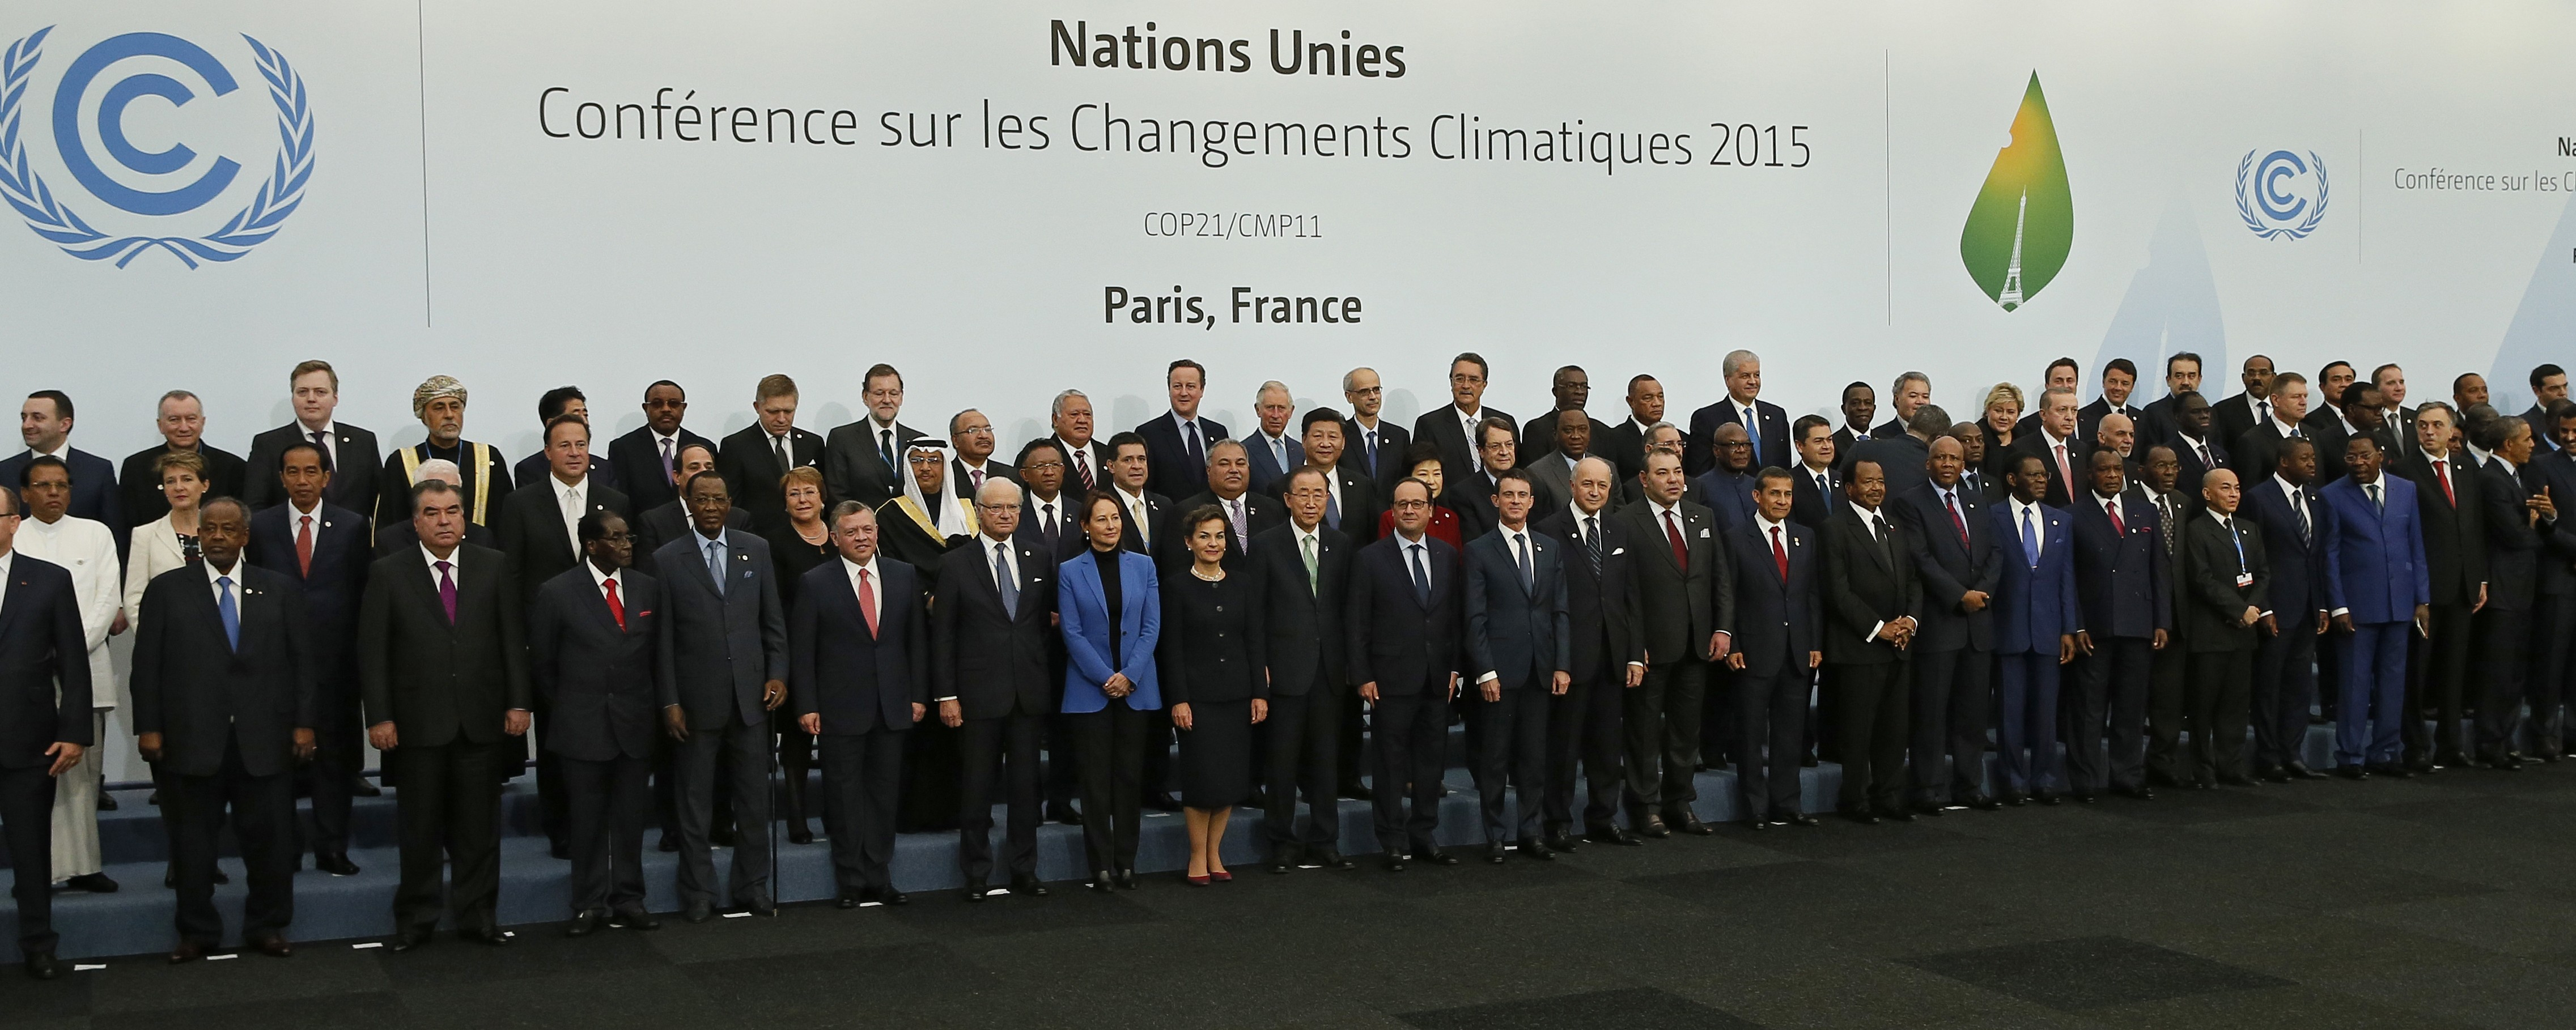 Leaders Link Climate Change And Terrorism at Opening of Paris Climate Summit